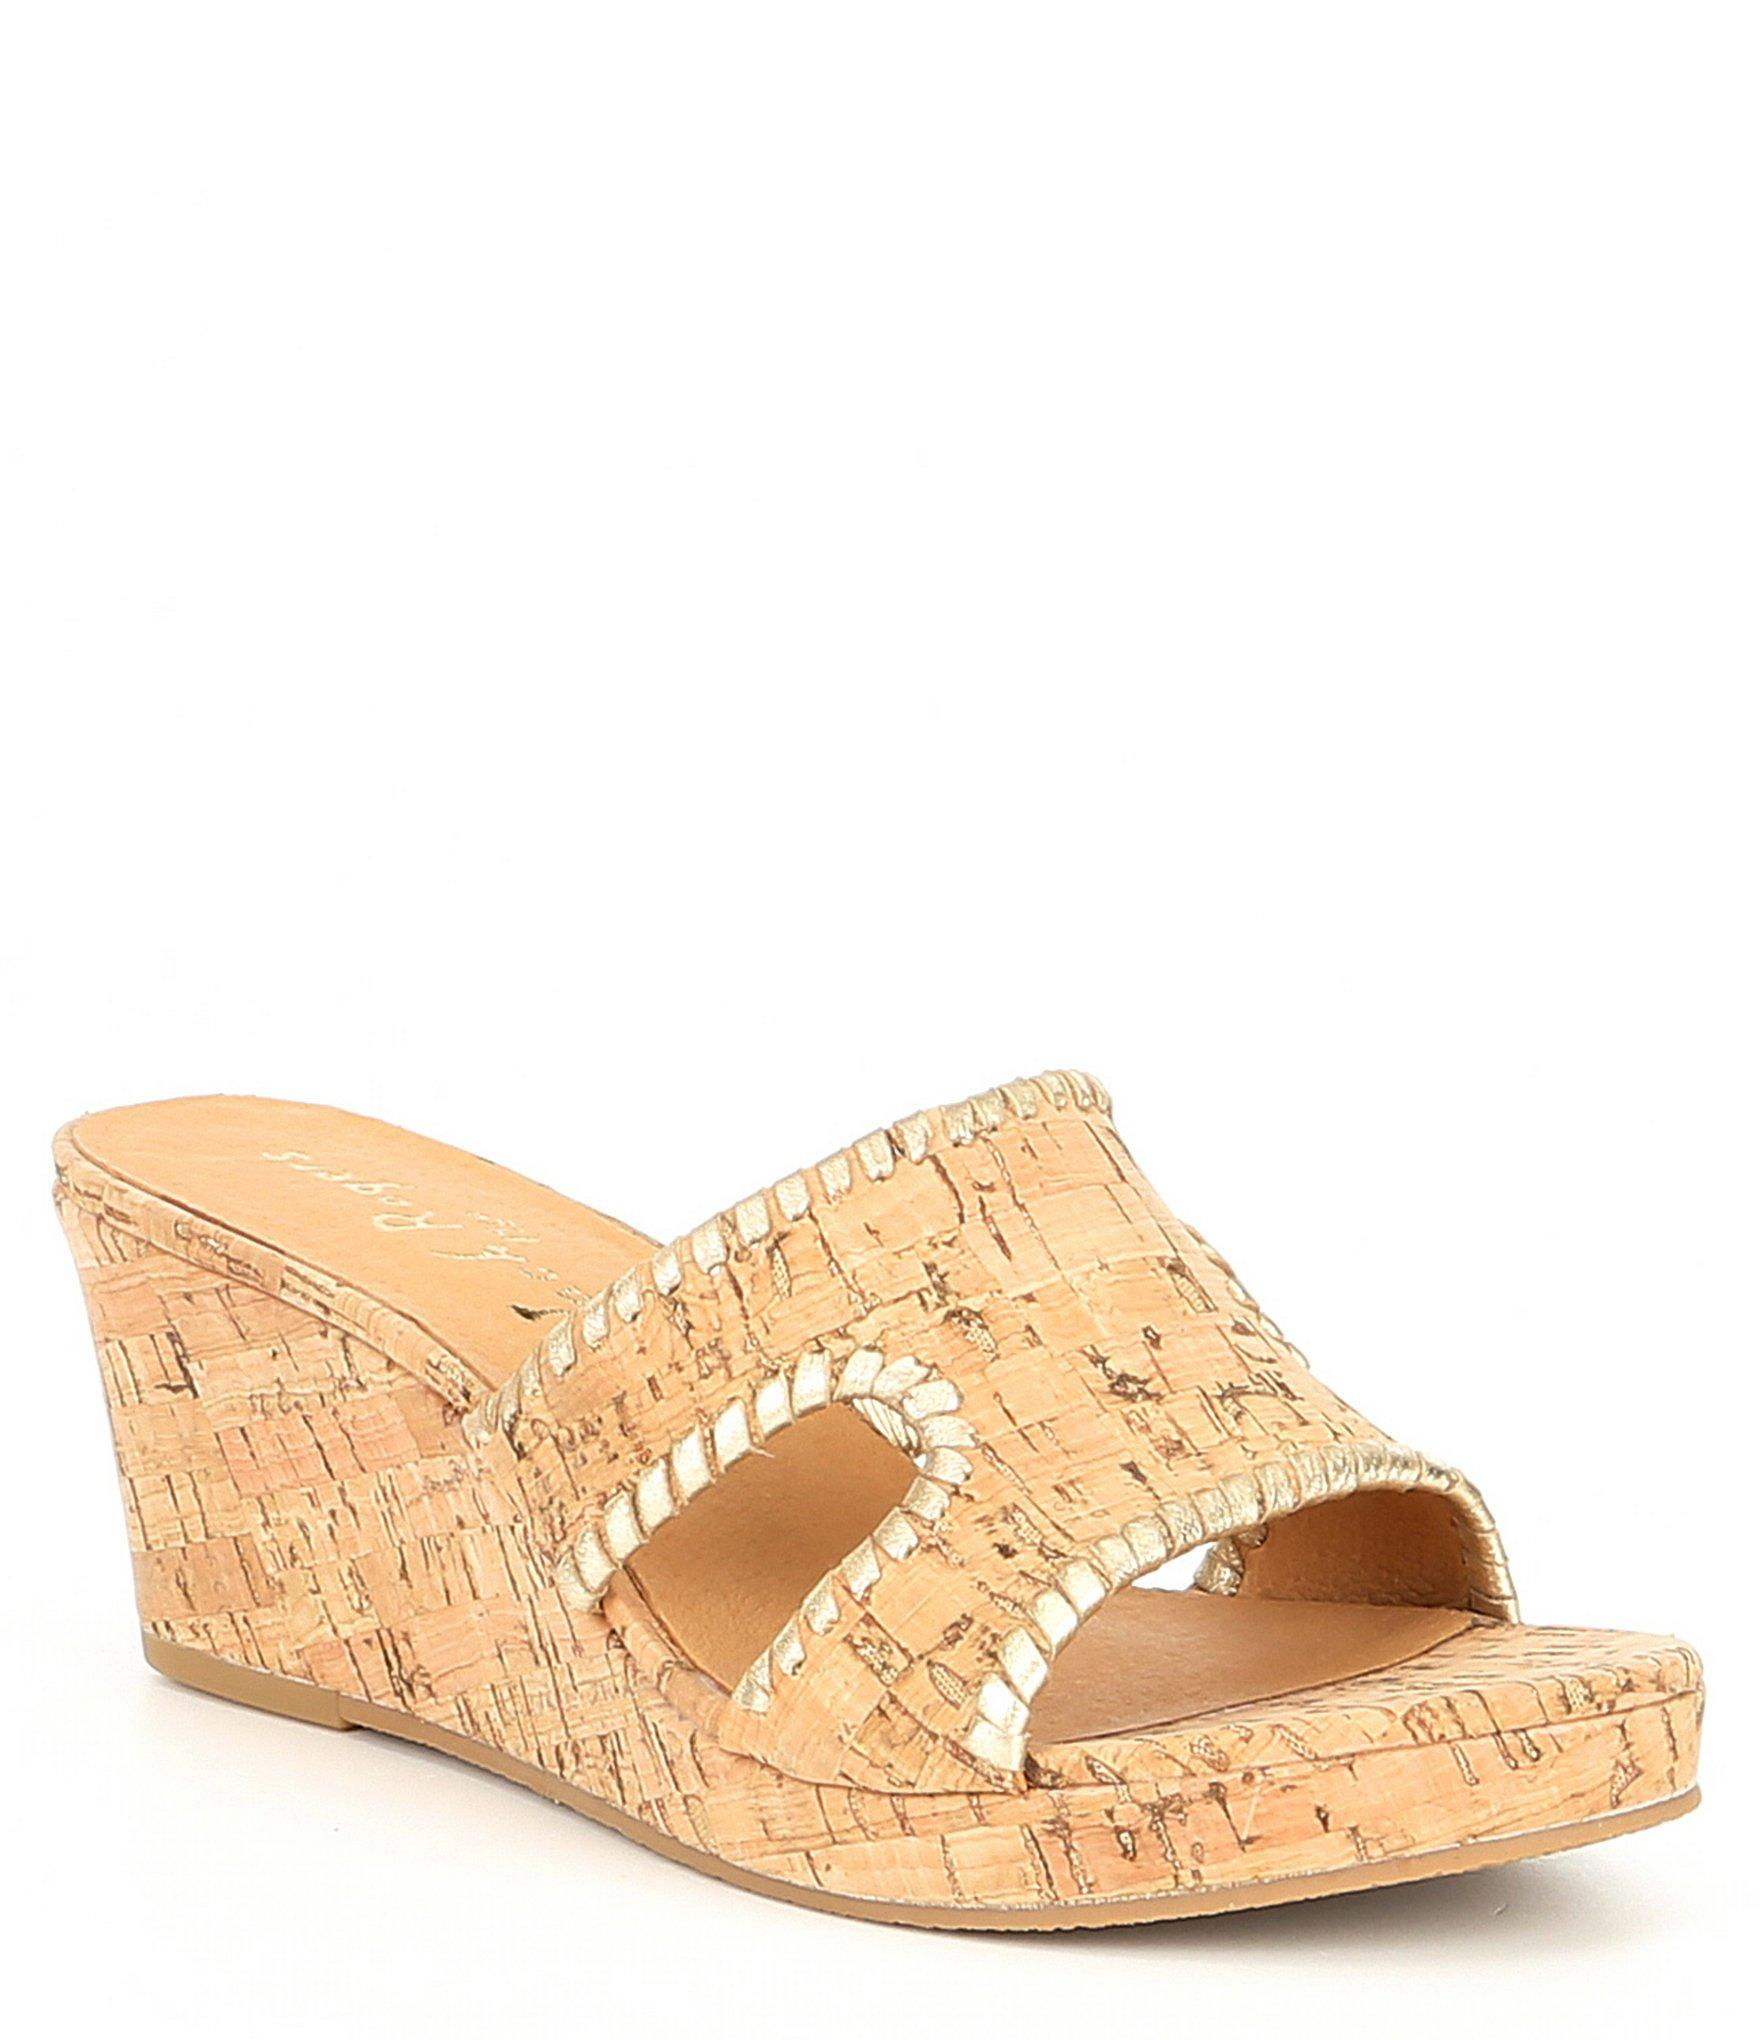 cb0535ffdedd Jack Rogers. Women s Sloane Leather And Cork Mid Wedges